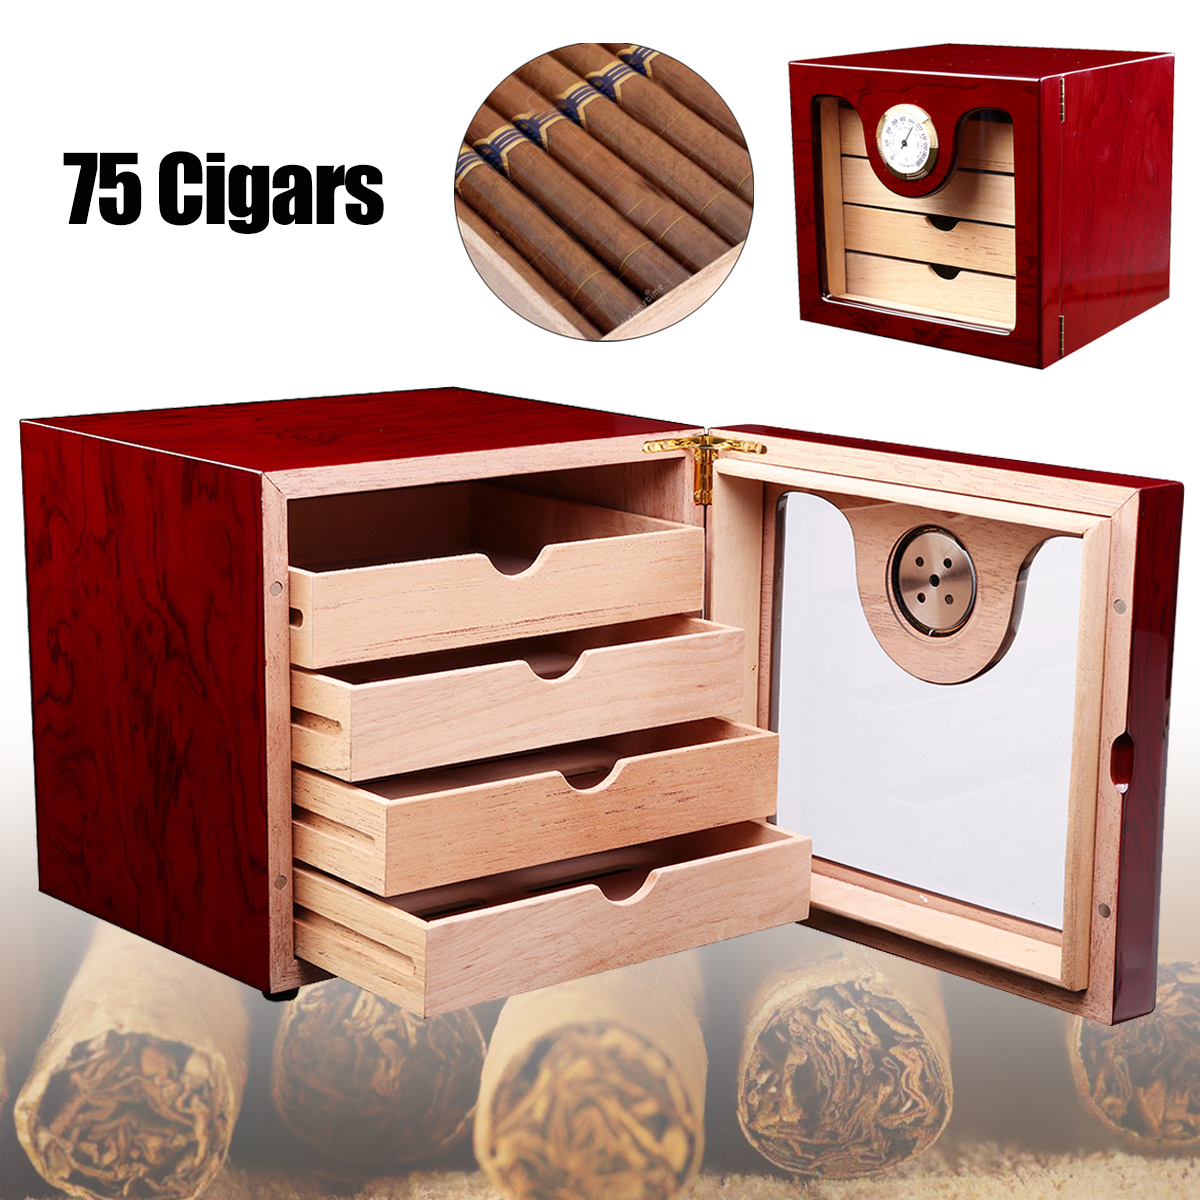 Portable Brown Cedar Wood Cigar Humidor Case With Humidifier Hygrometer Cigar Storage Box Holds up to